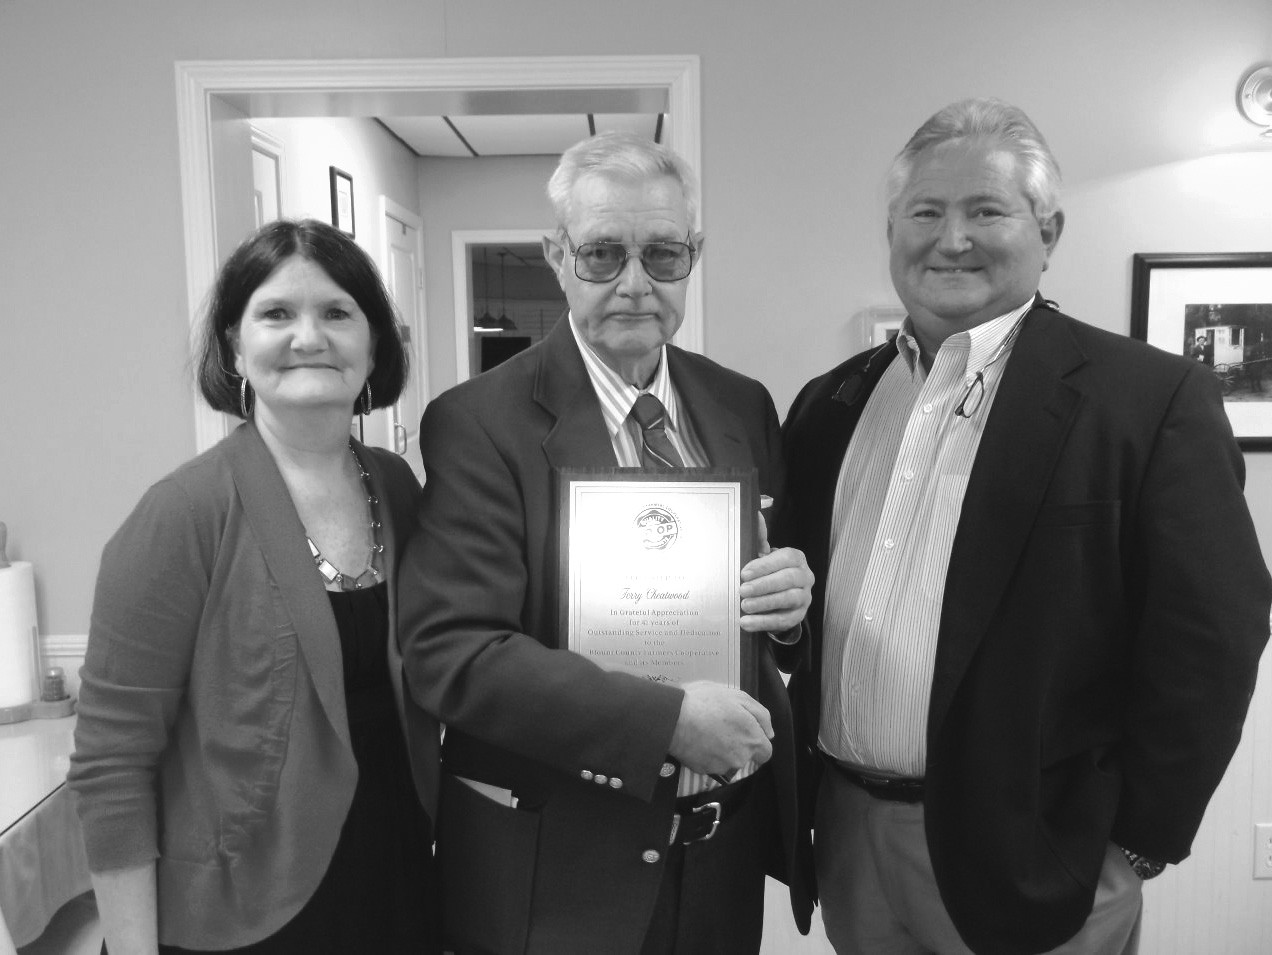 Terry Cheatwood (center) with wife, Elaine, accepts a plaque from Jeff Hallmark, president of the Blount County Co-Op, for 41 years of outstanding service and dedication.